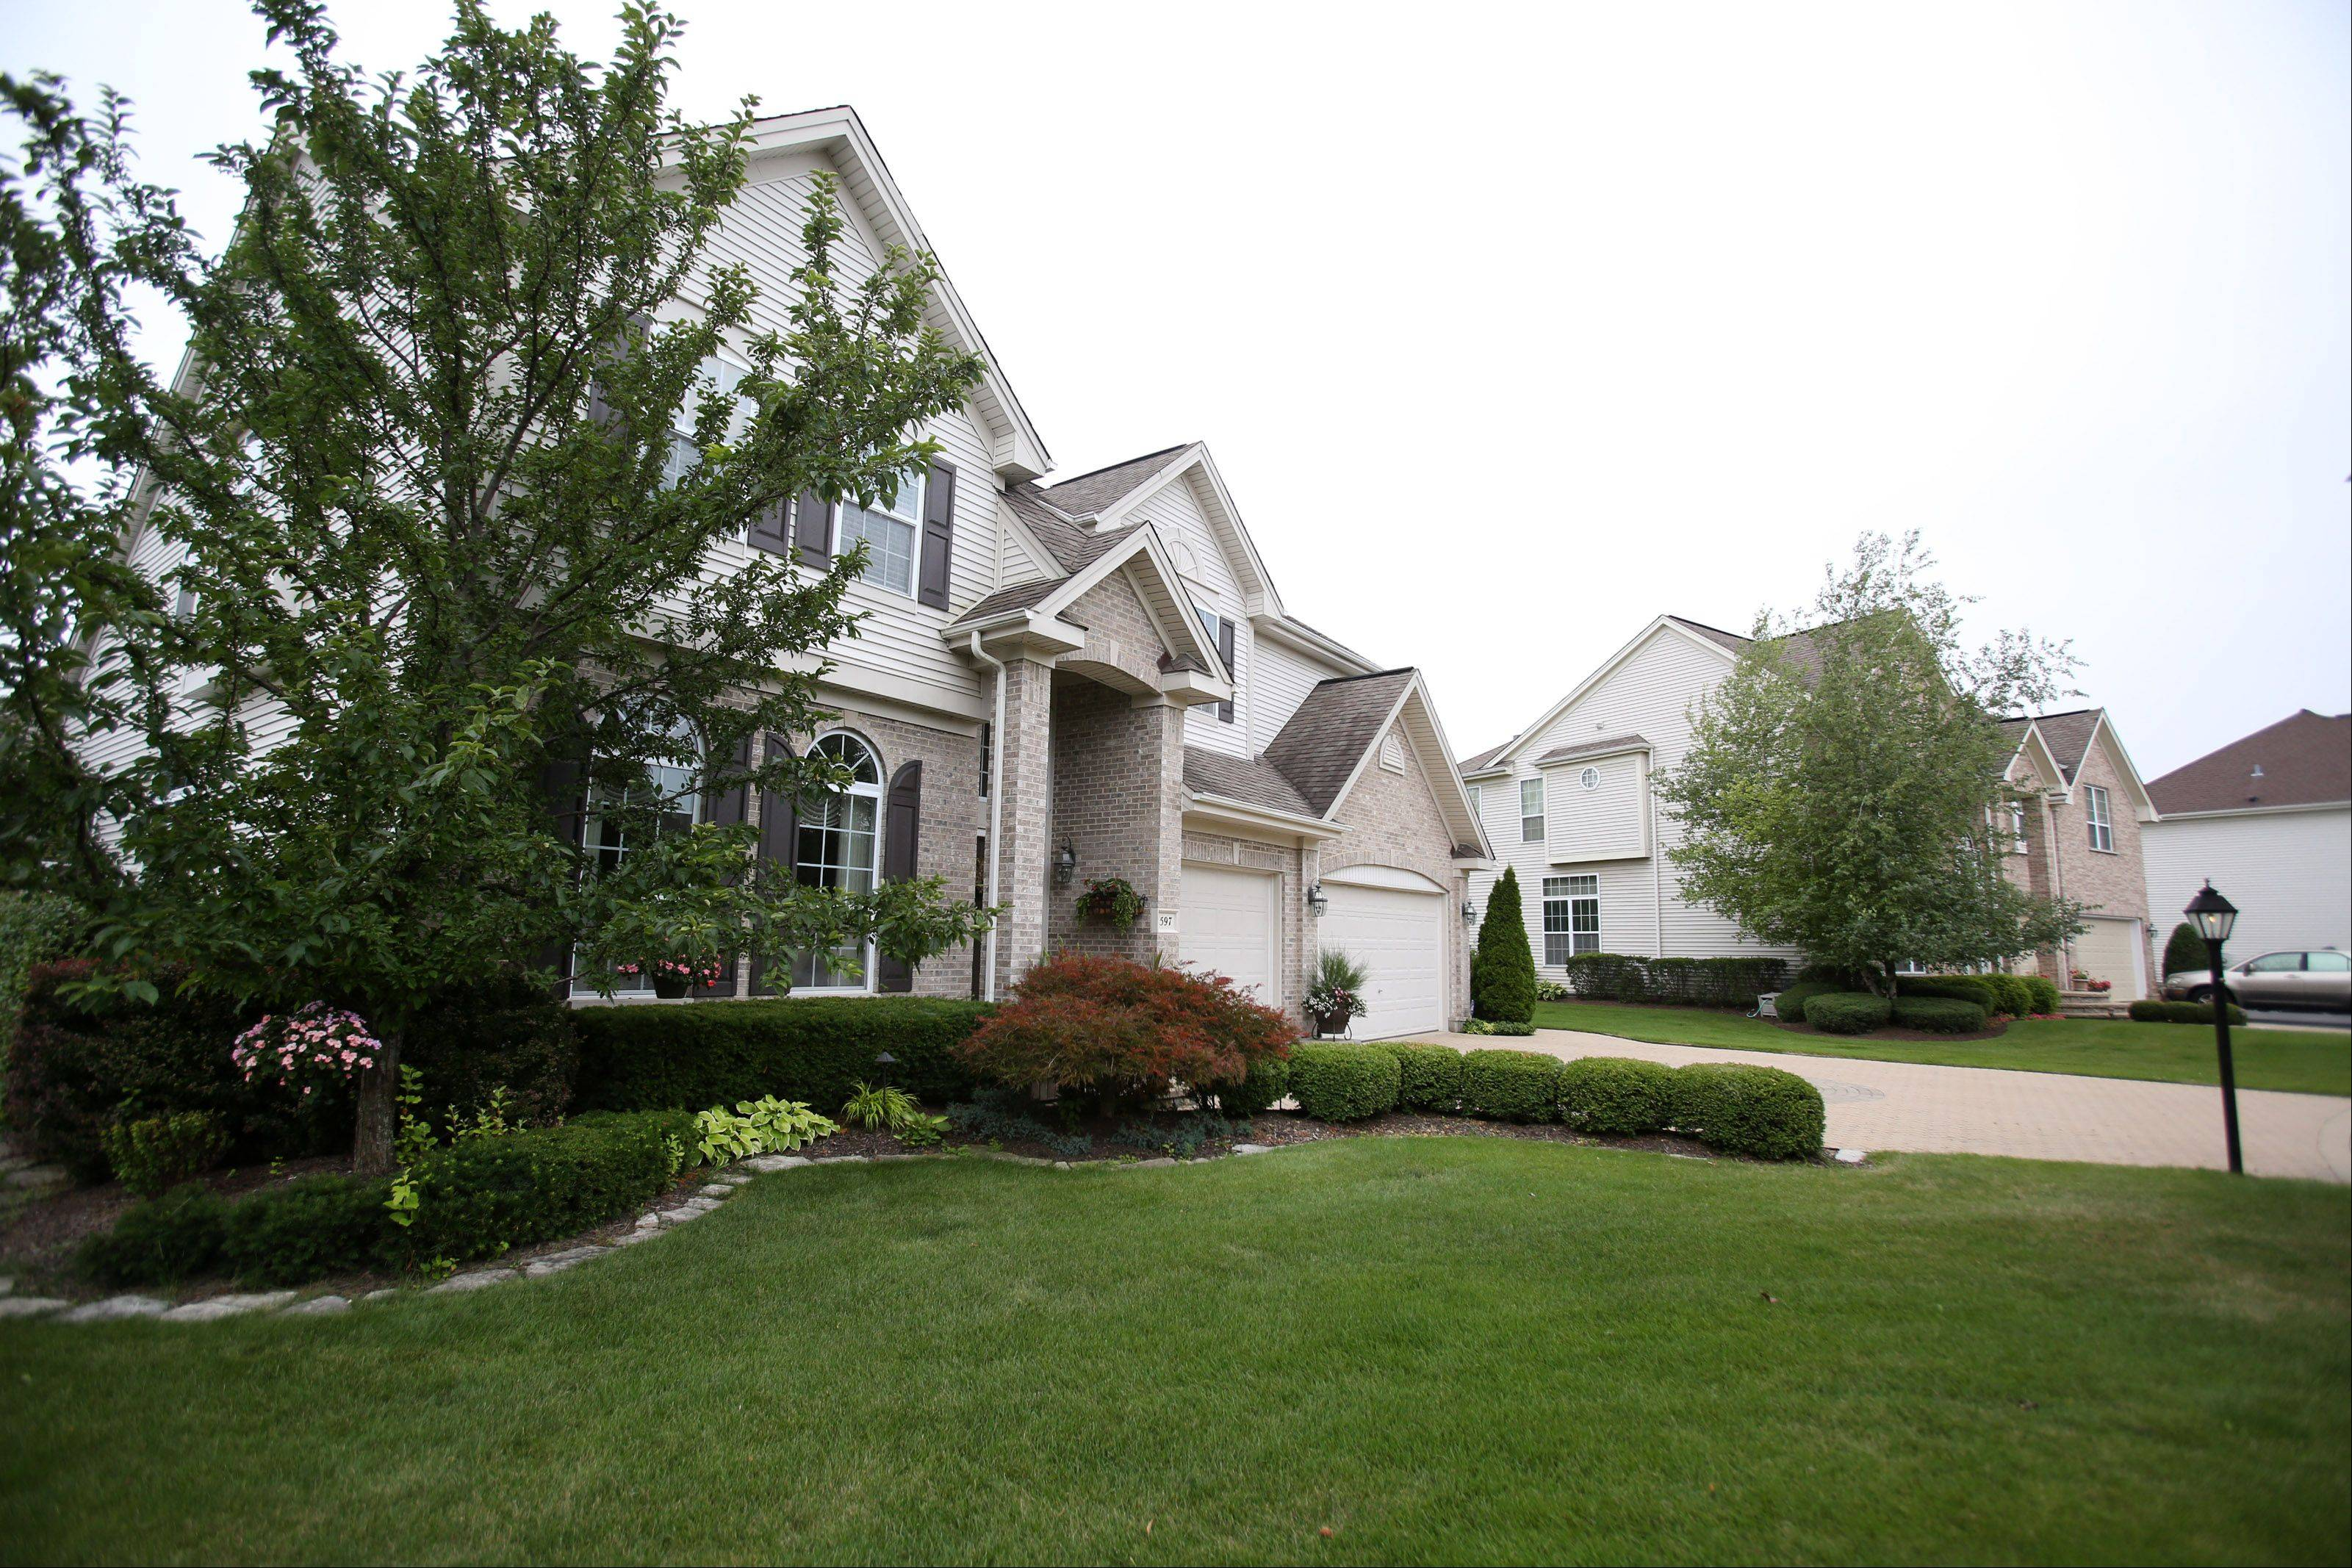 Some of Palatine's larger homes with expansive lots are found in Wexford. These houses are located on West Slippery Rock Road.